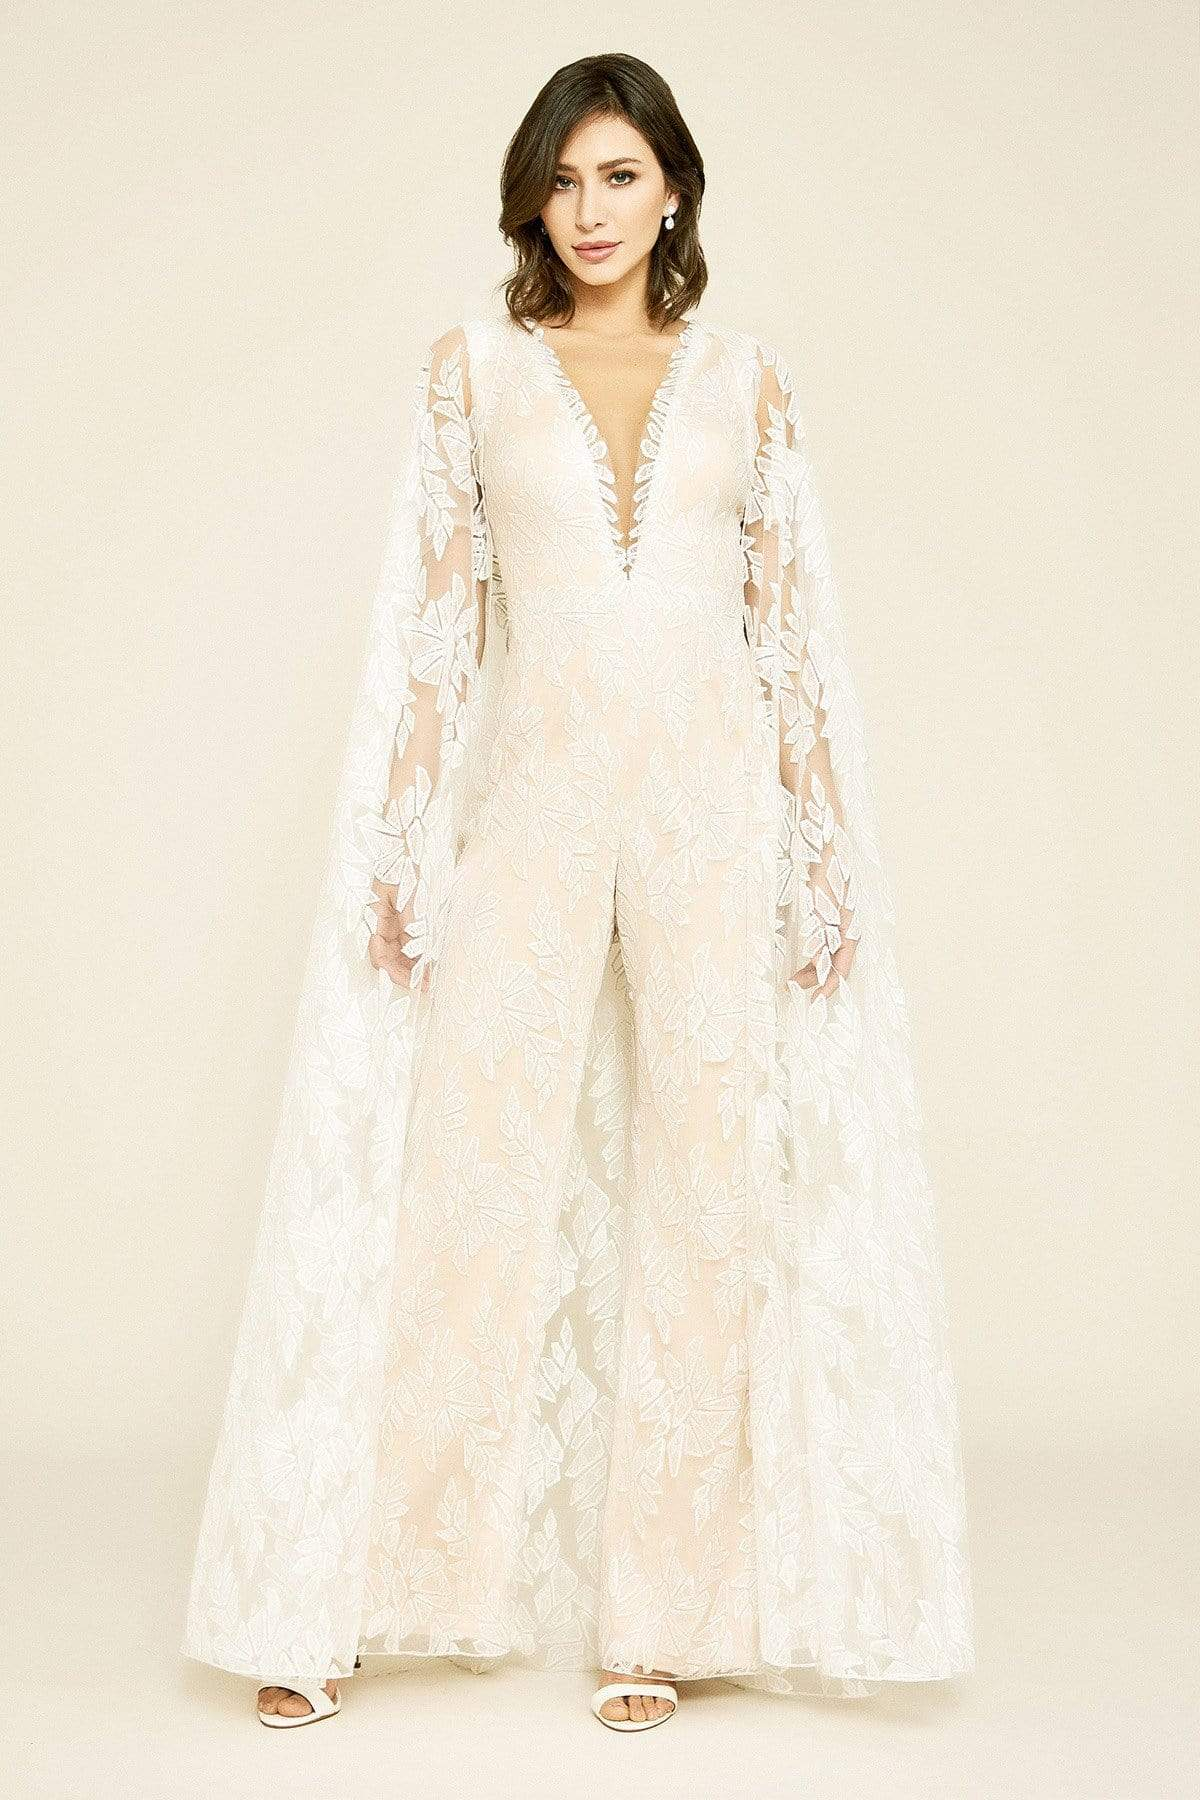 Tadashi Shoji - Rupert Lace Cape Jumpsuit In White and Neutral